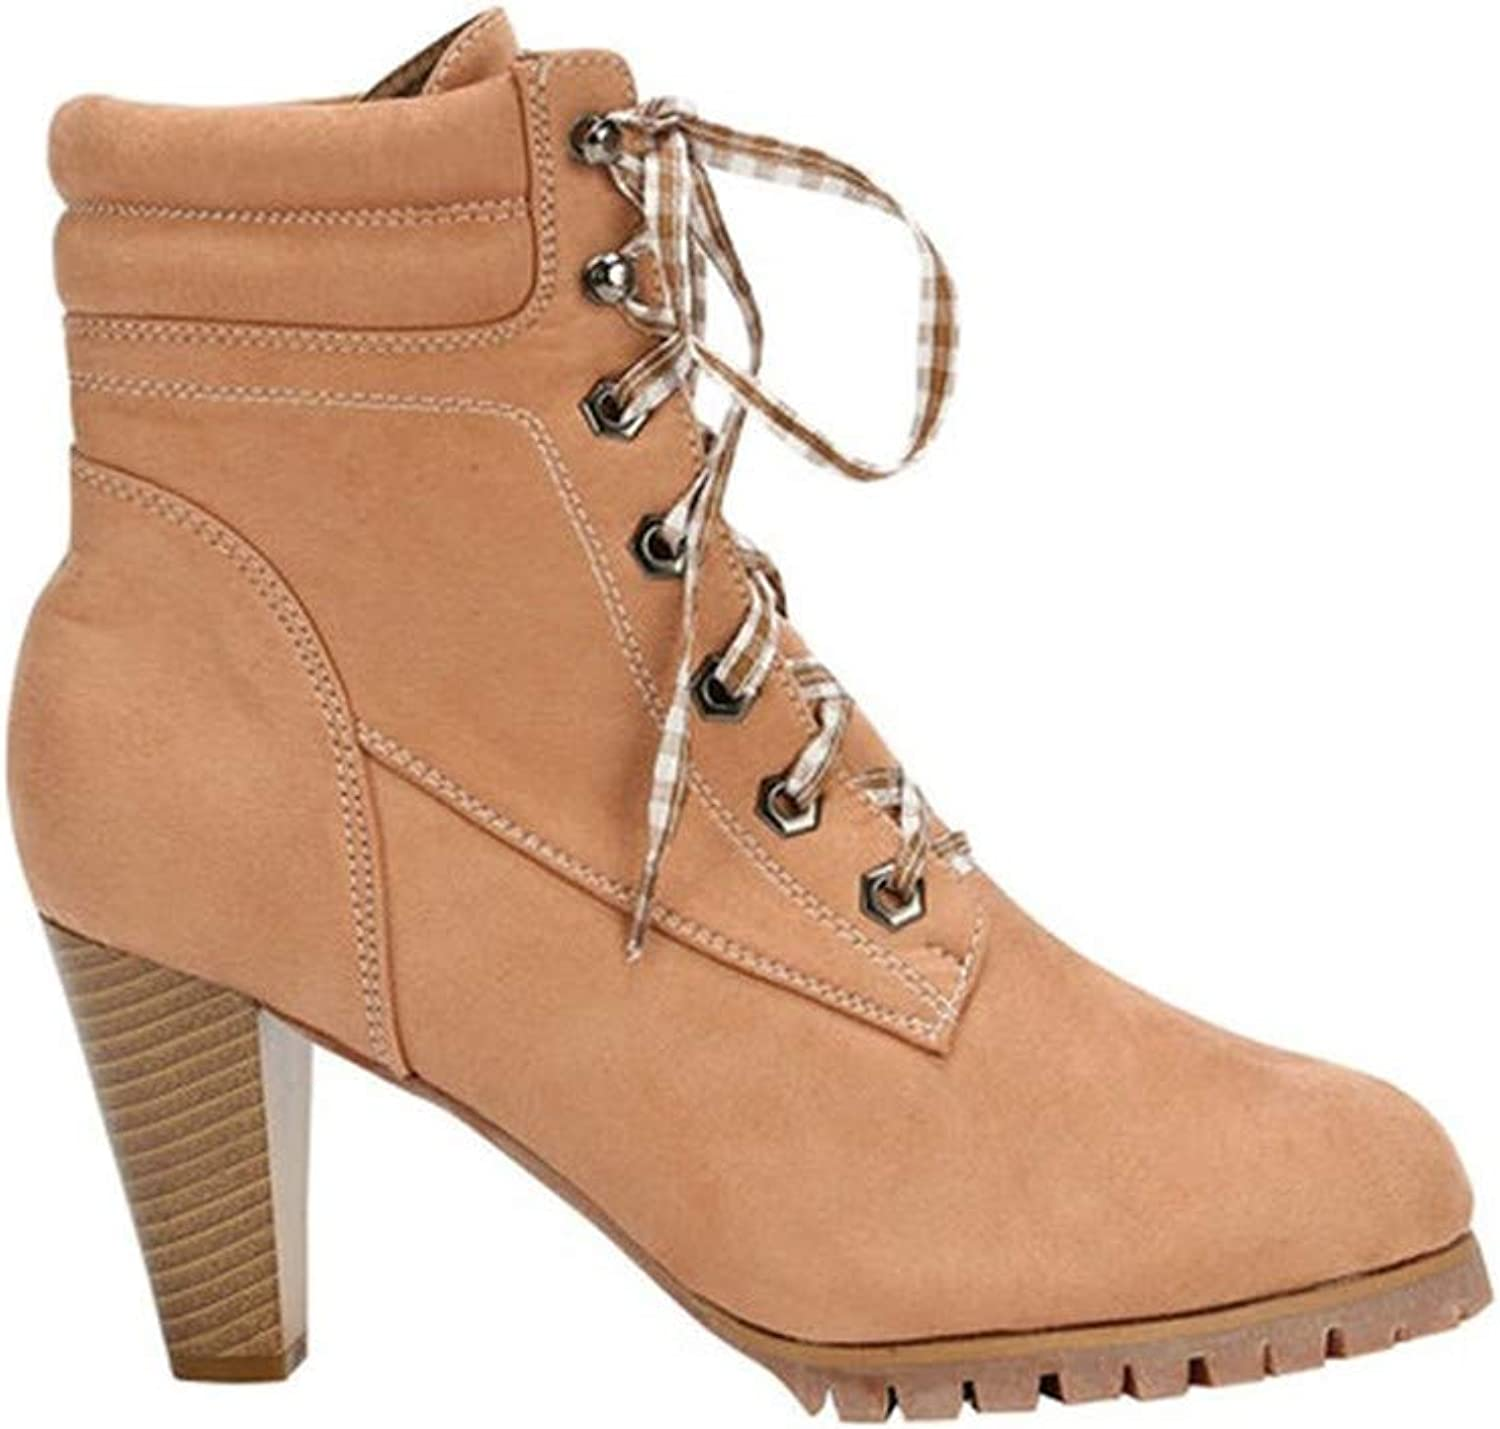 Winter Ladies shoes with High Heels Round Head Boots Large Size PU Leather Warm Imitation Leather Lining